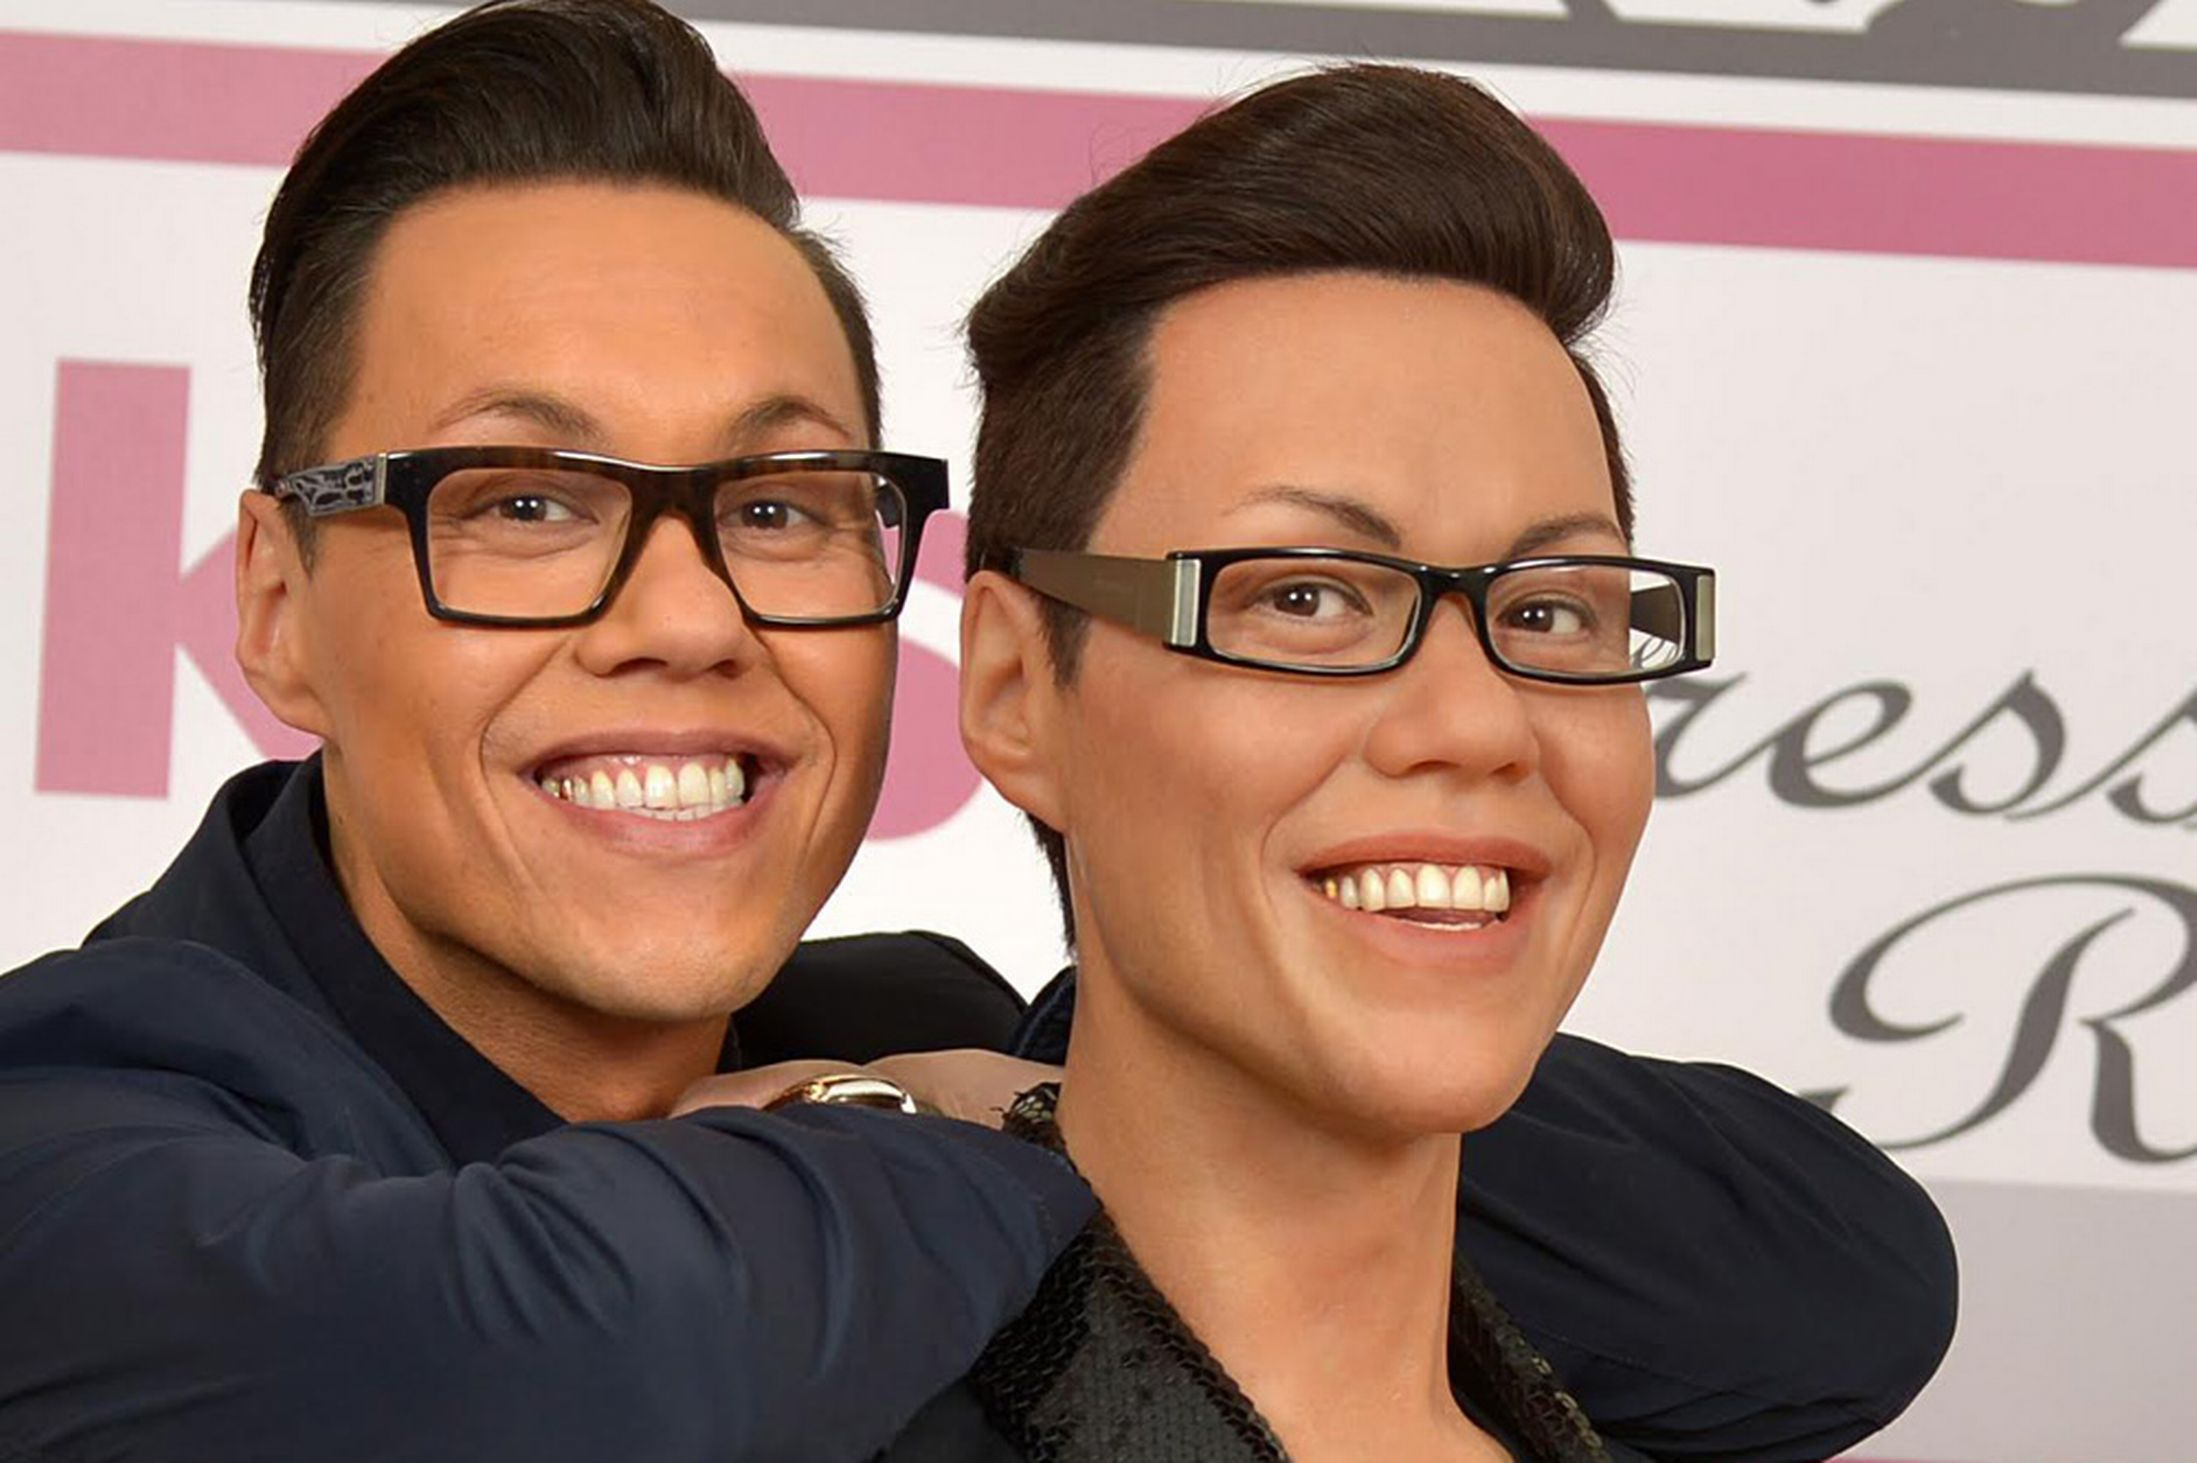 Gok Wan Gets A Make Over At Madame Tussauds Blackpool Madame Tussauds Madame Tussauds